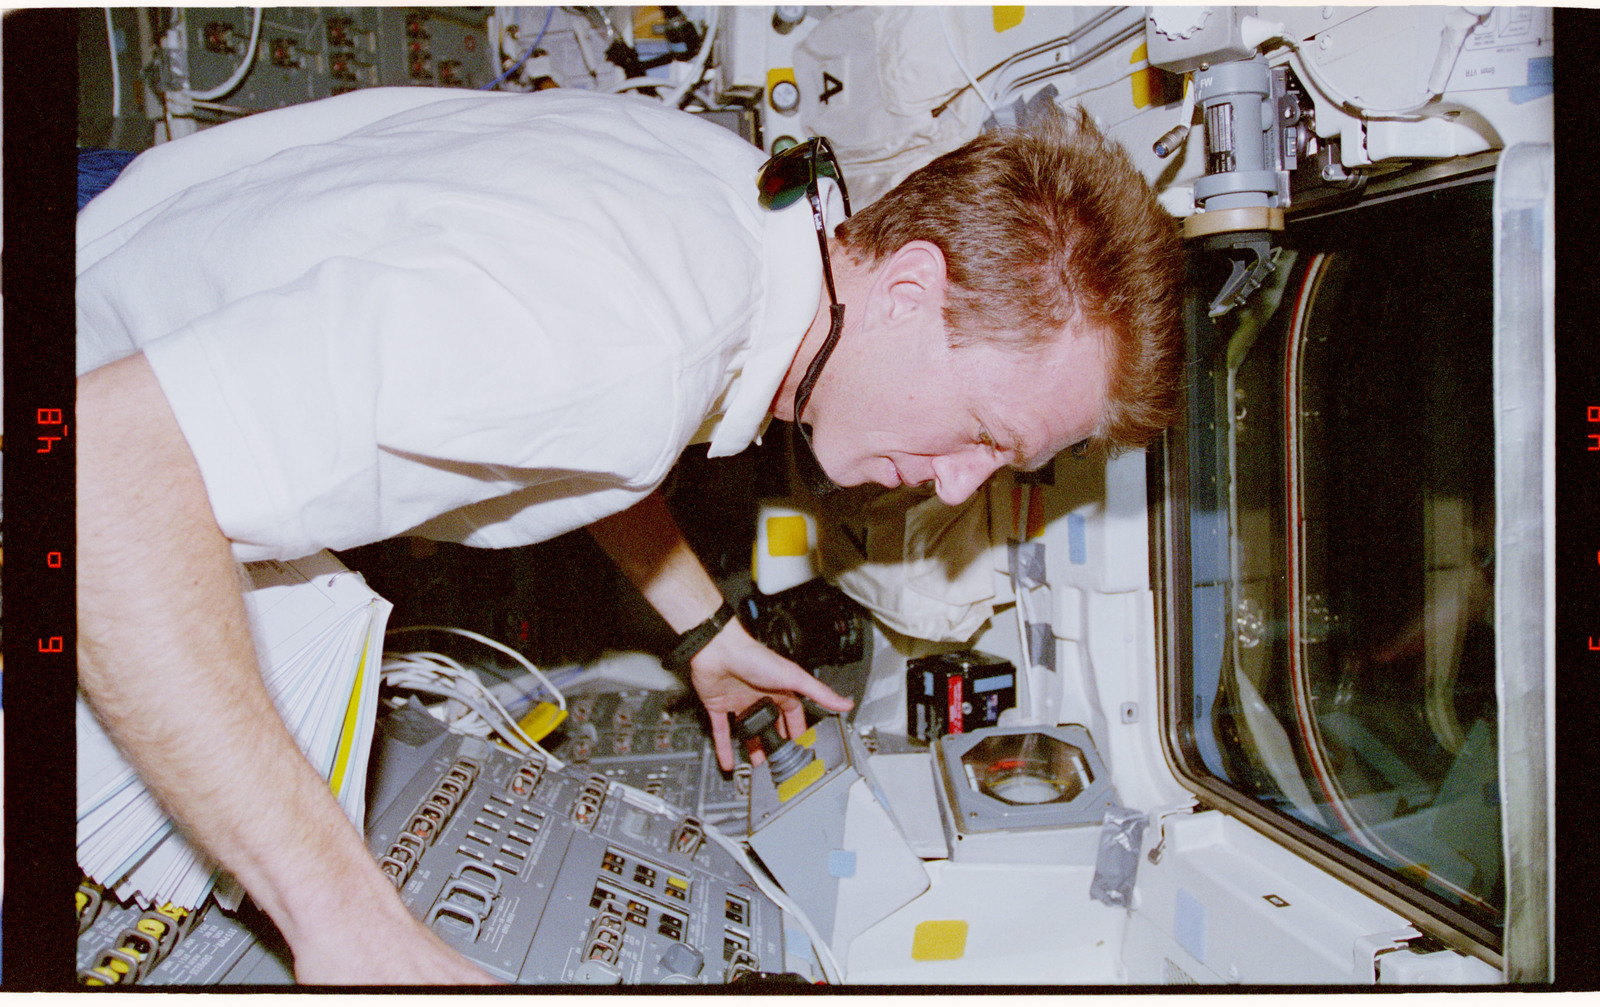 STS081-311-025 - STS-081 - STS-81 crew activities during undocking with Mir space station